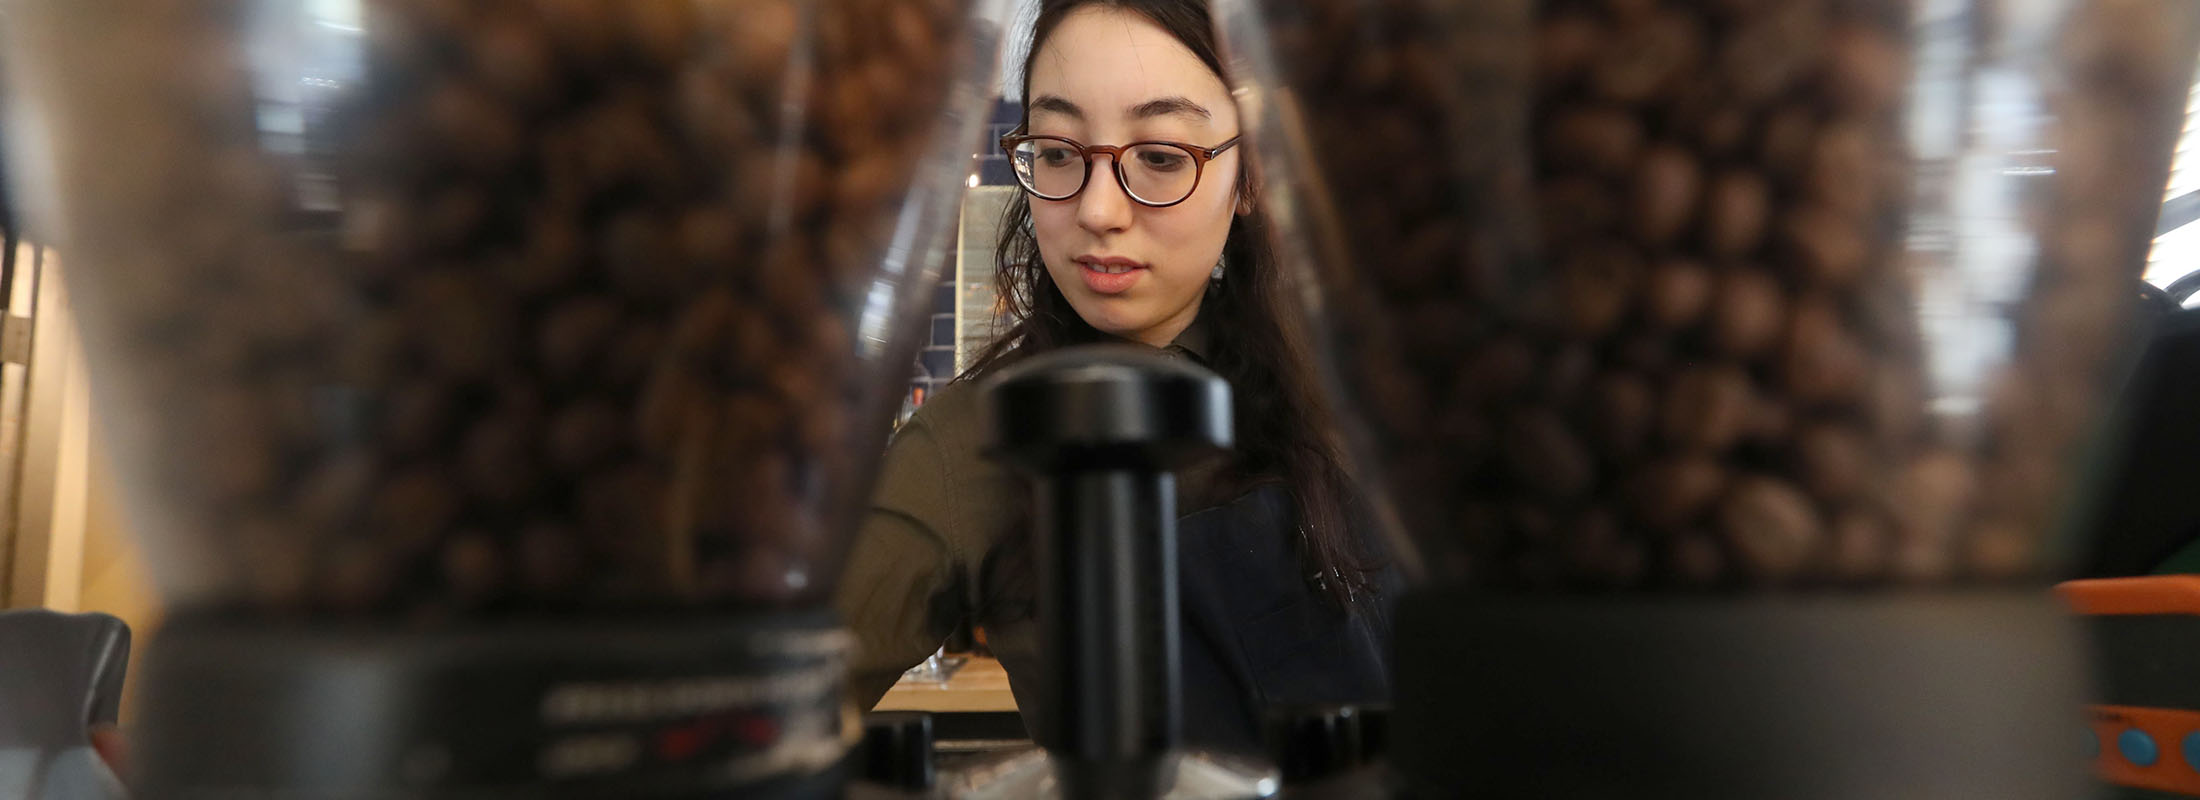 Remedy House, at 429 Rhode Island St. Barista D. Sloan prepares coffee. (Sharon Cantillon/Buffalo News)